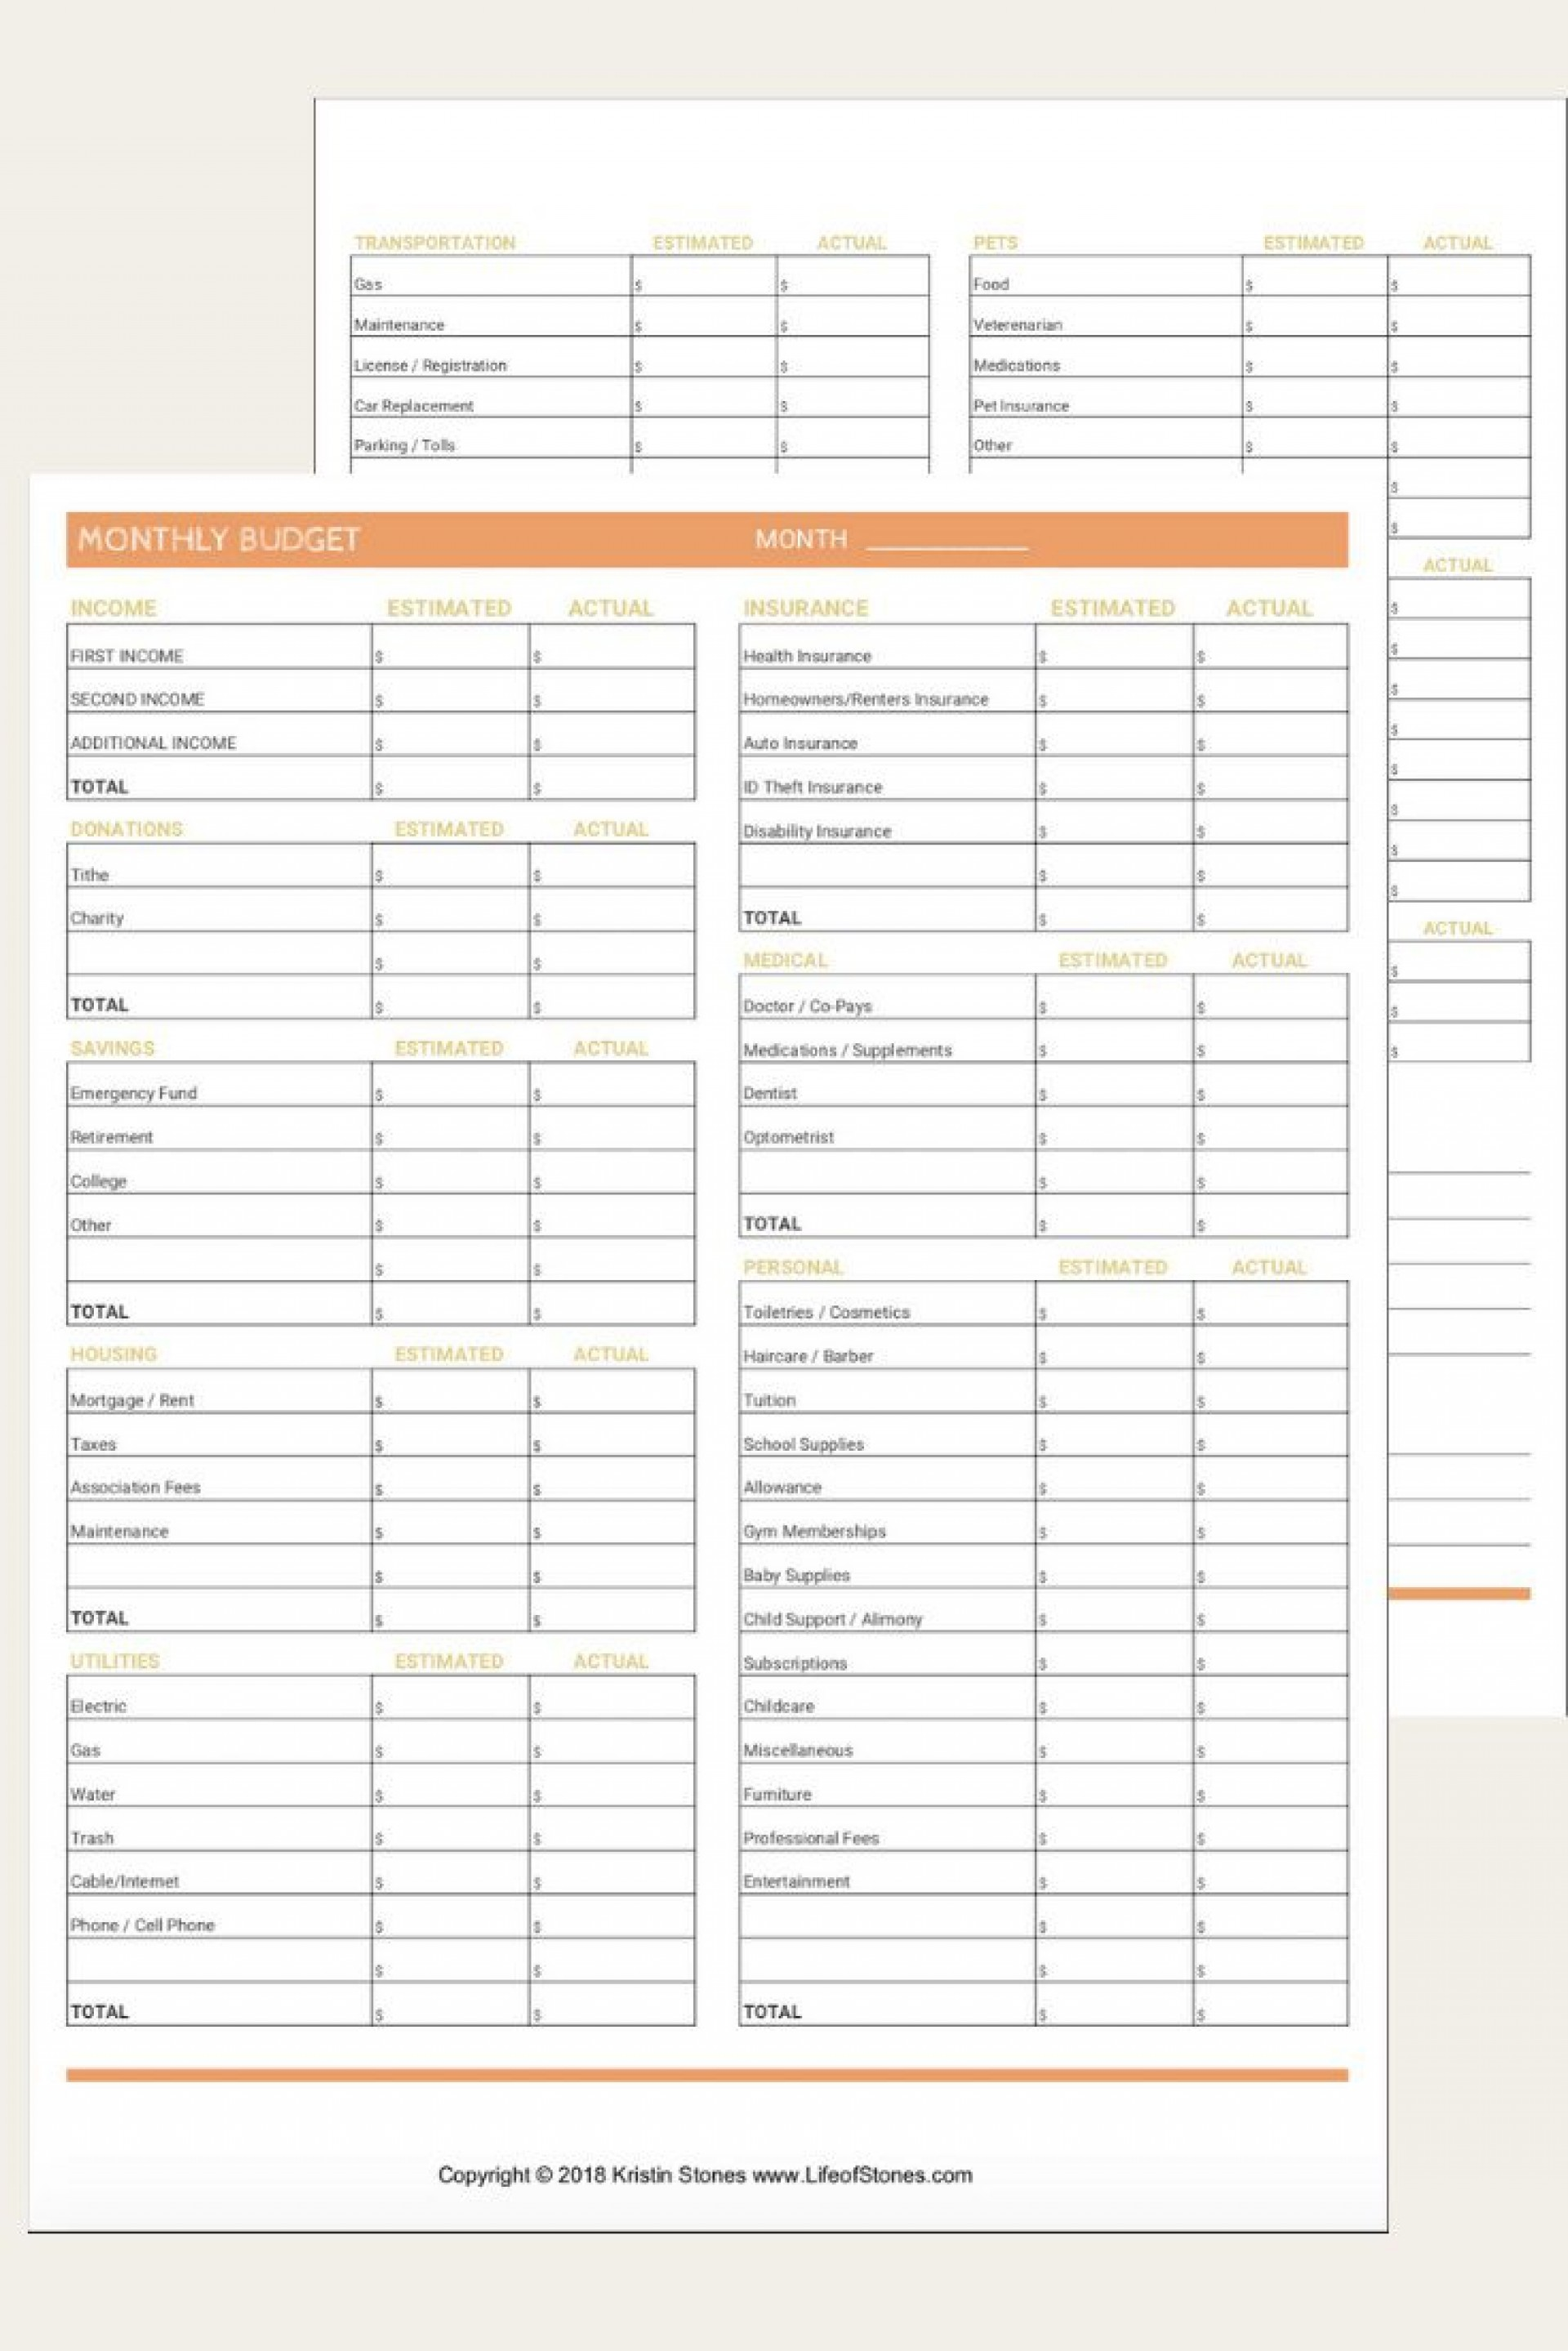 006 Fascinating Free Blank Monthly Budget Template High Definition  Editable Downloadable Printable1920